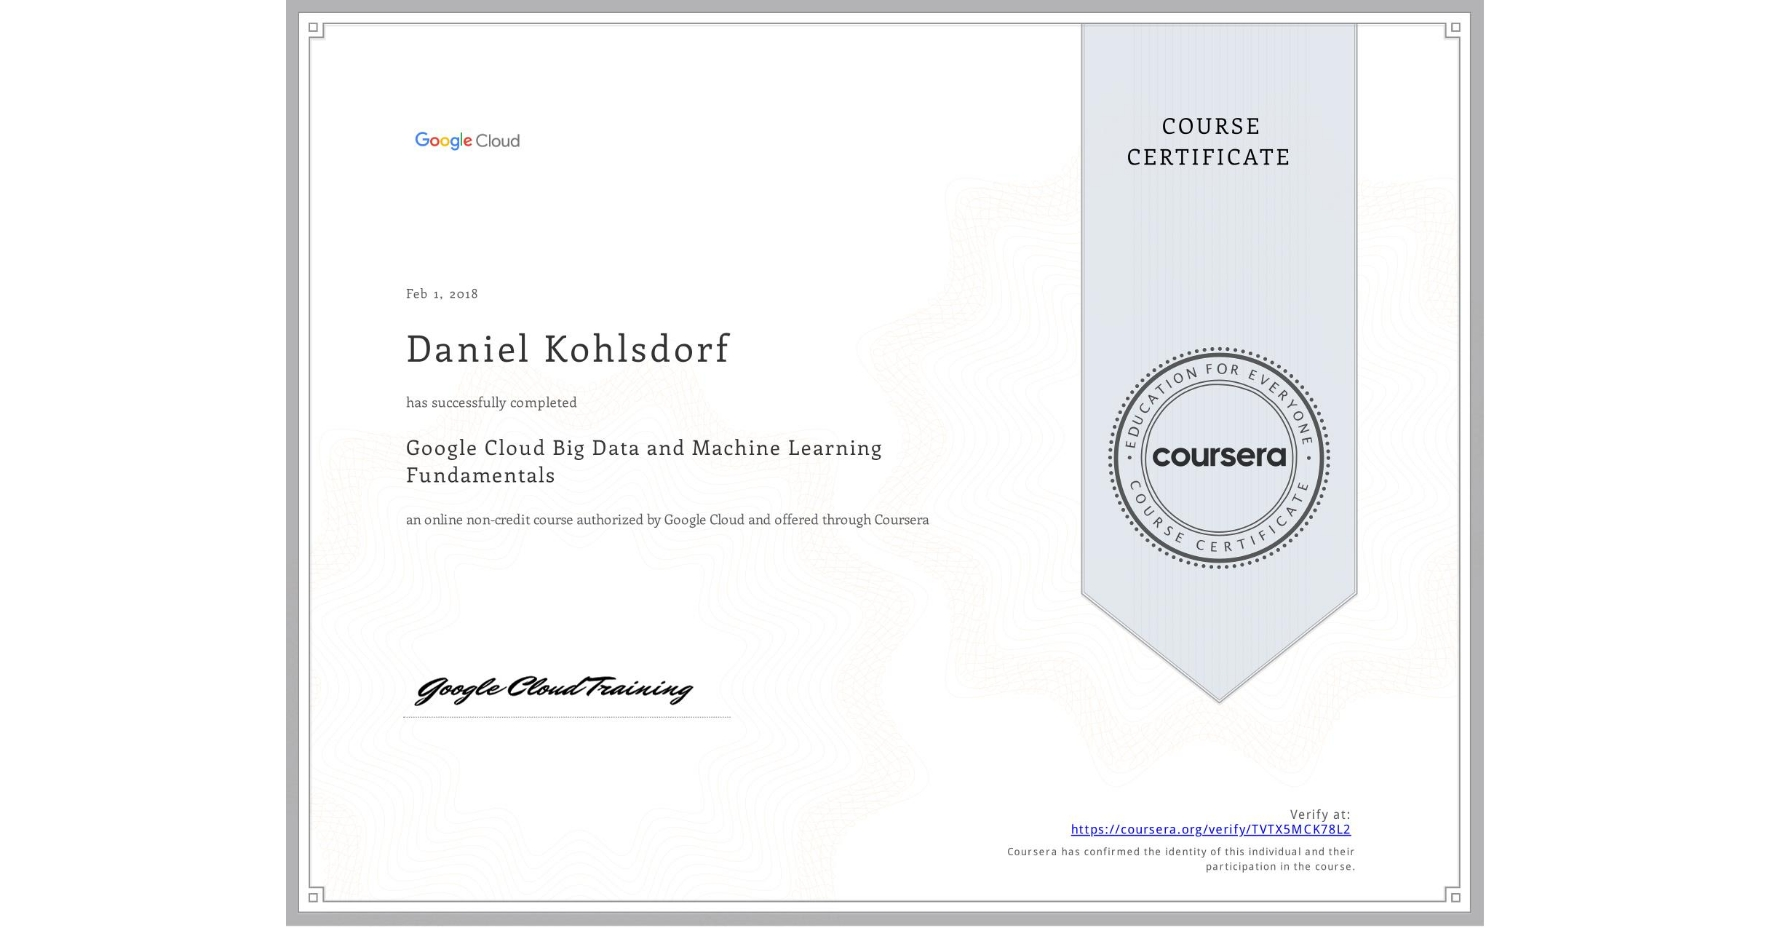 View certificate for Daniel Kohlsdorf, Google Cloud Platform Big Data and Machine Learning Fundamentals, an online non-credit course authorized by Google Cloud and offered through Coursera